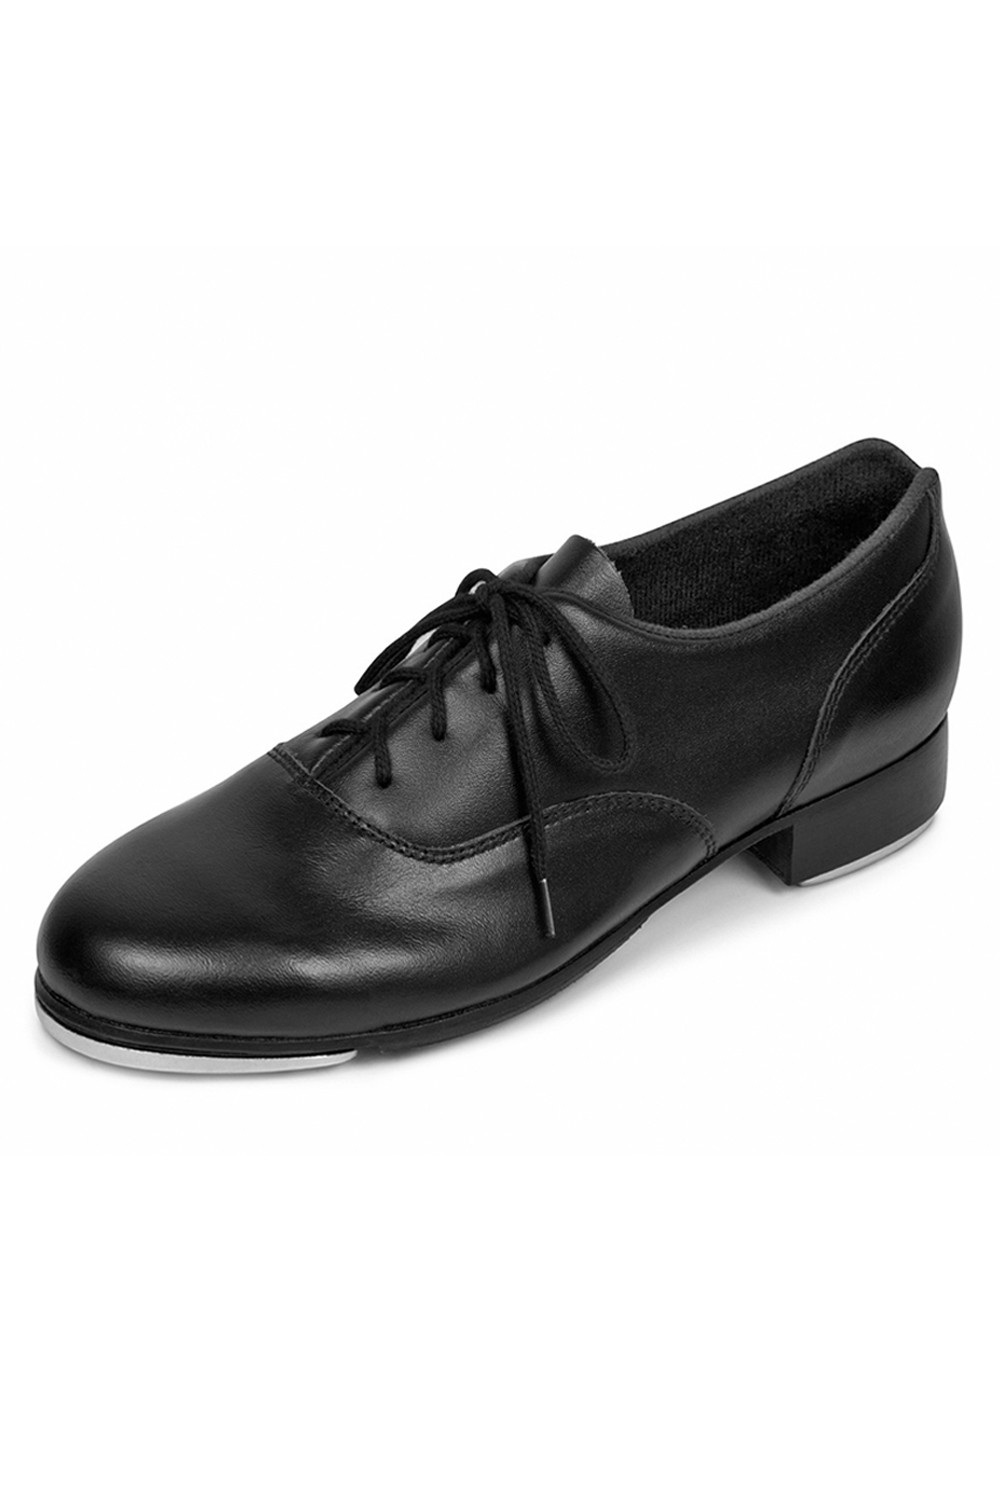 Men's Respect Tap Shoes Men's Tap Shoes